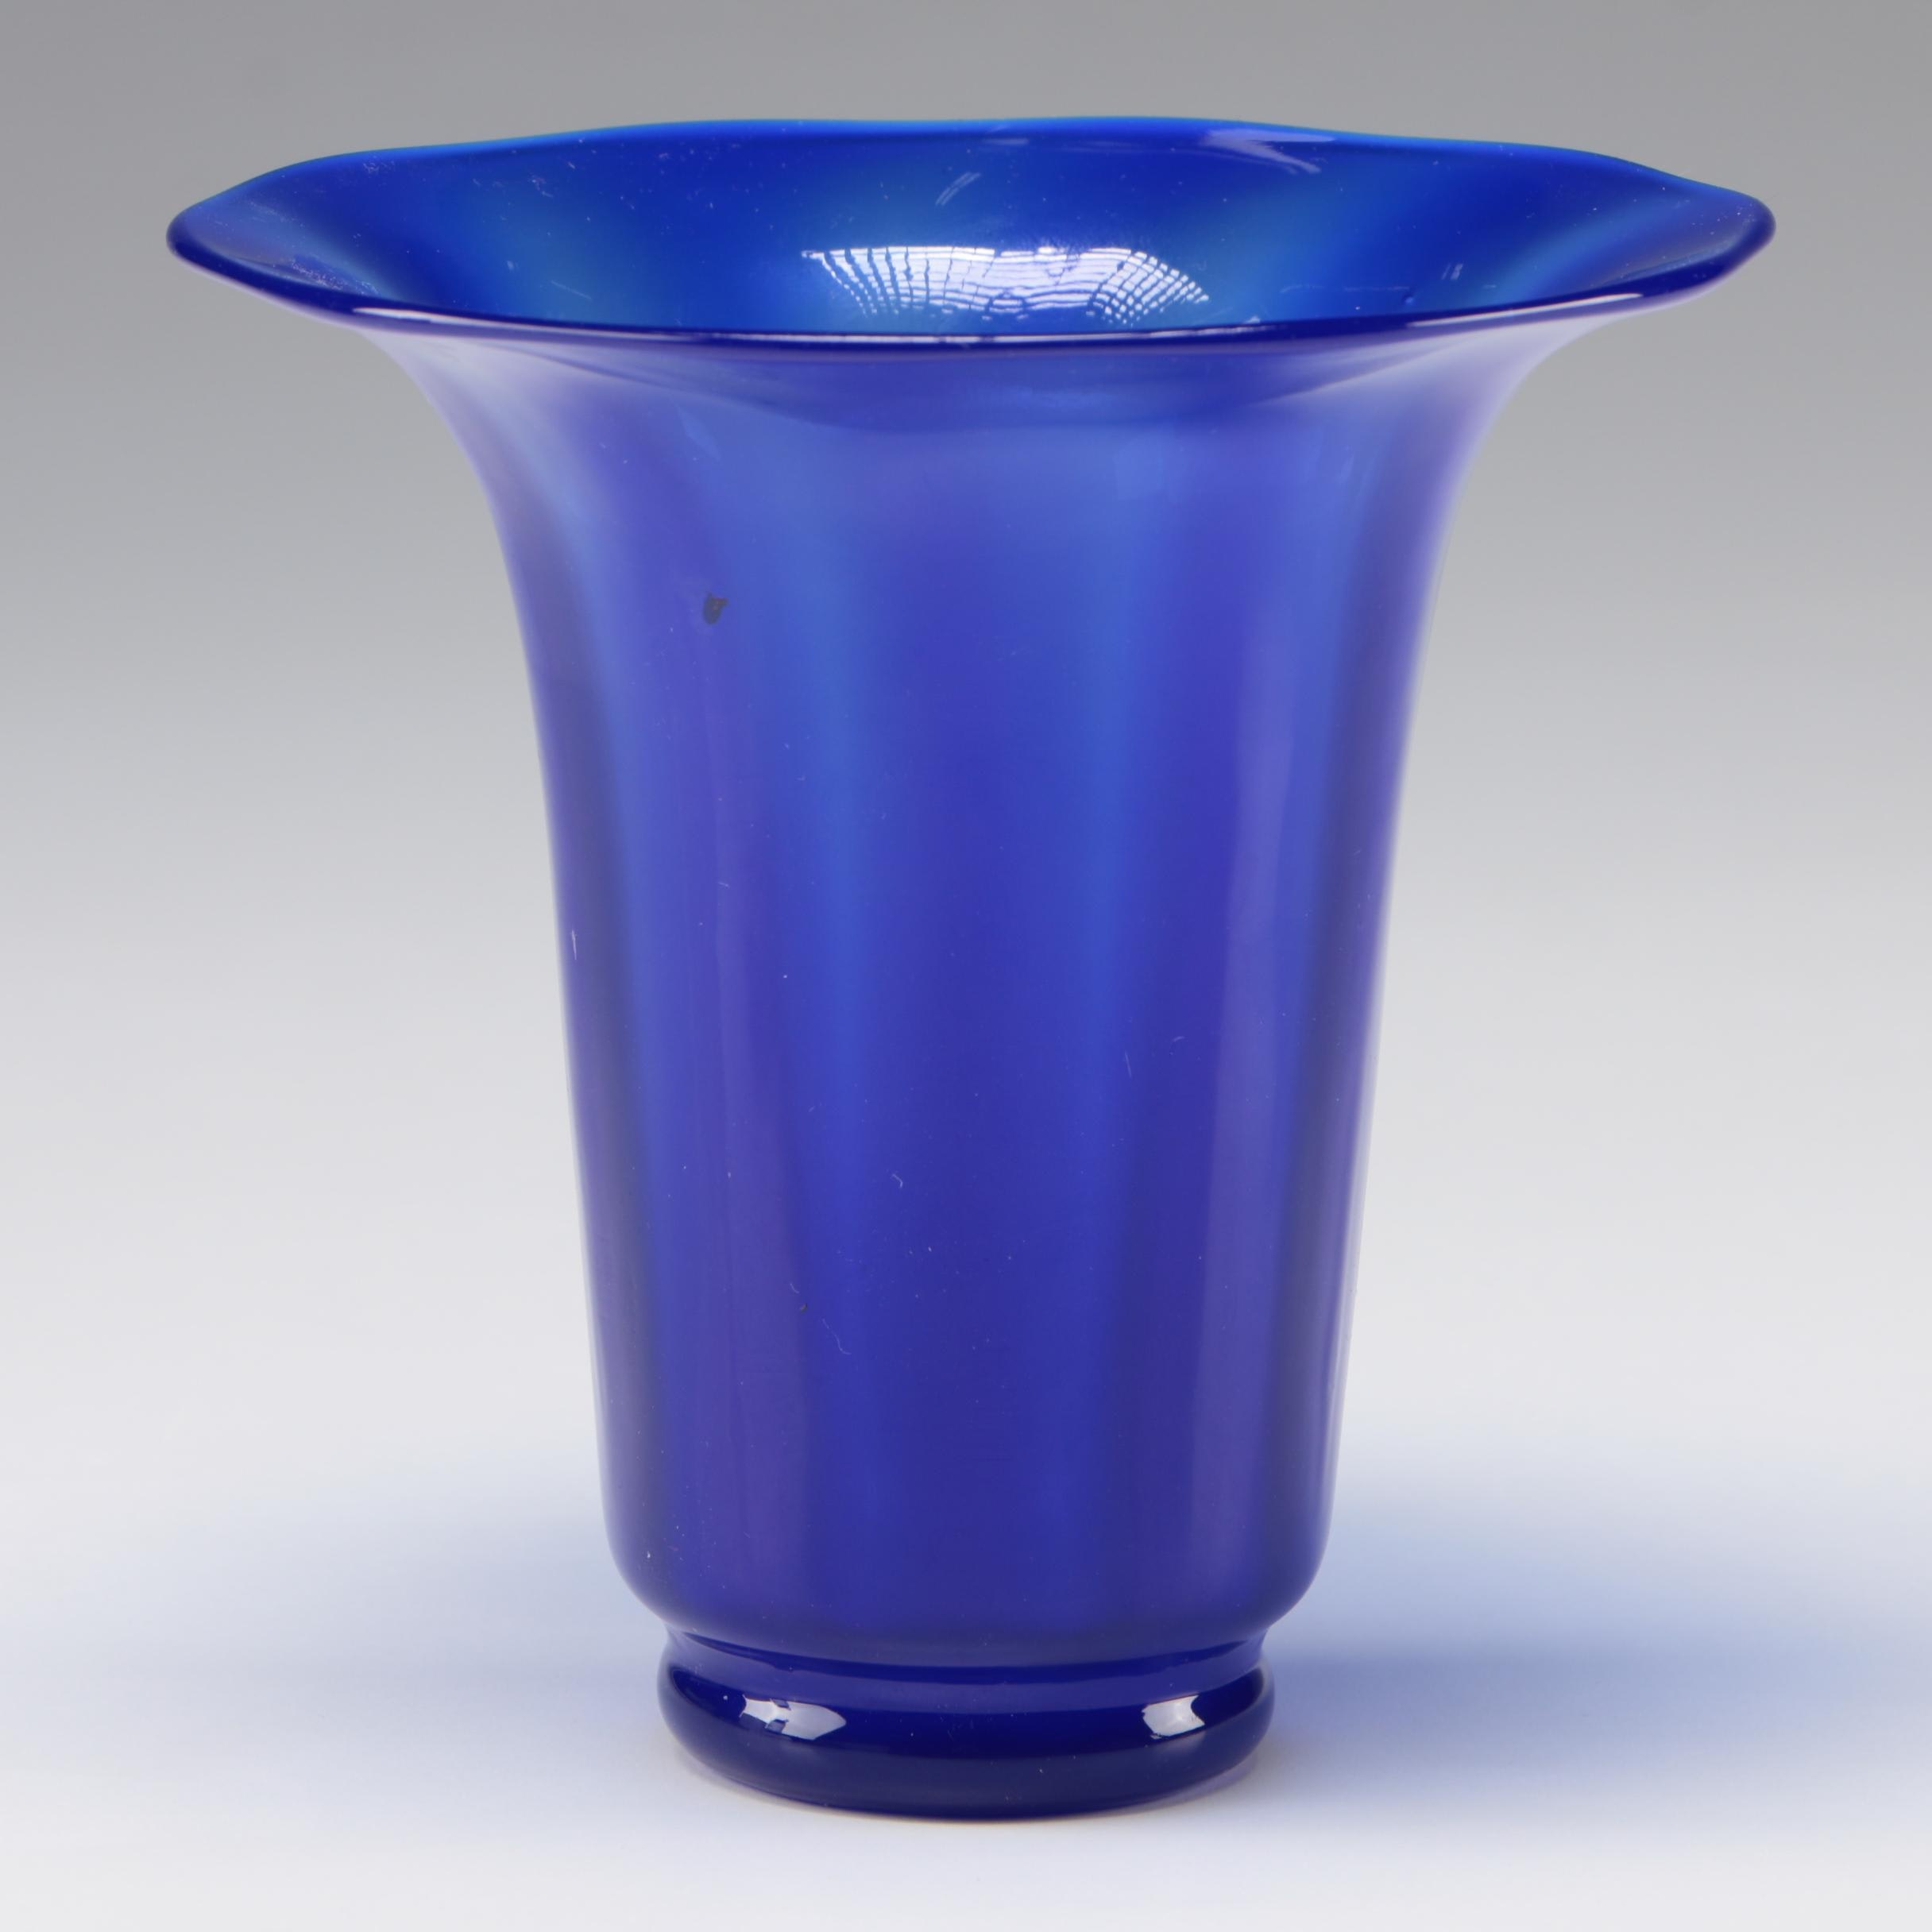 Steuben Dark Blue Jade Optic Ribbed Art Glass Vase by F. Carder, 1903-1933